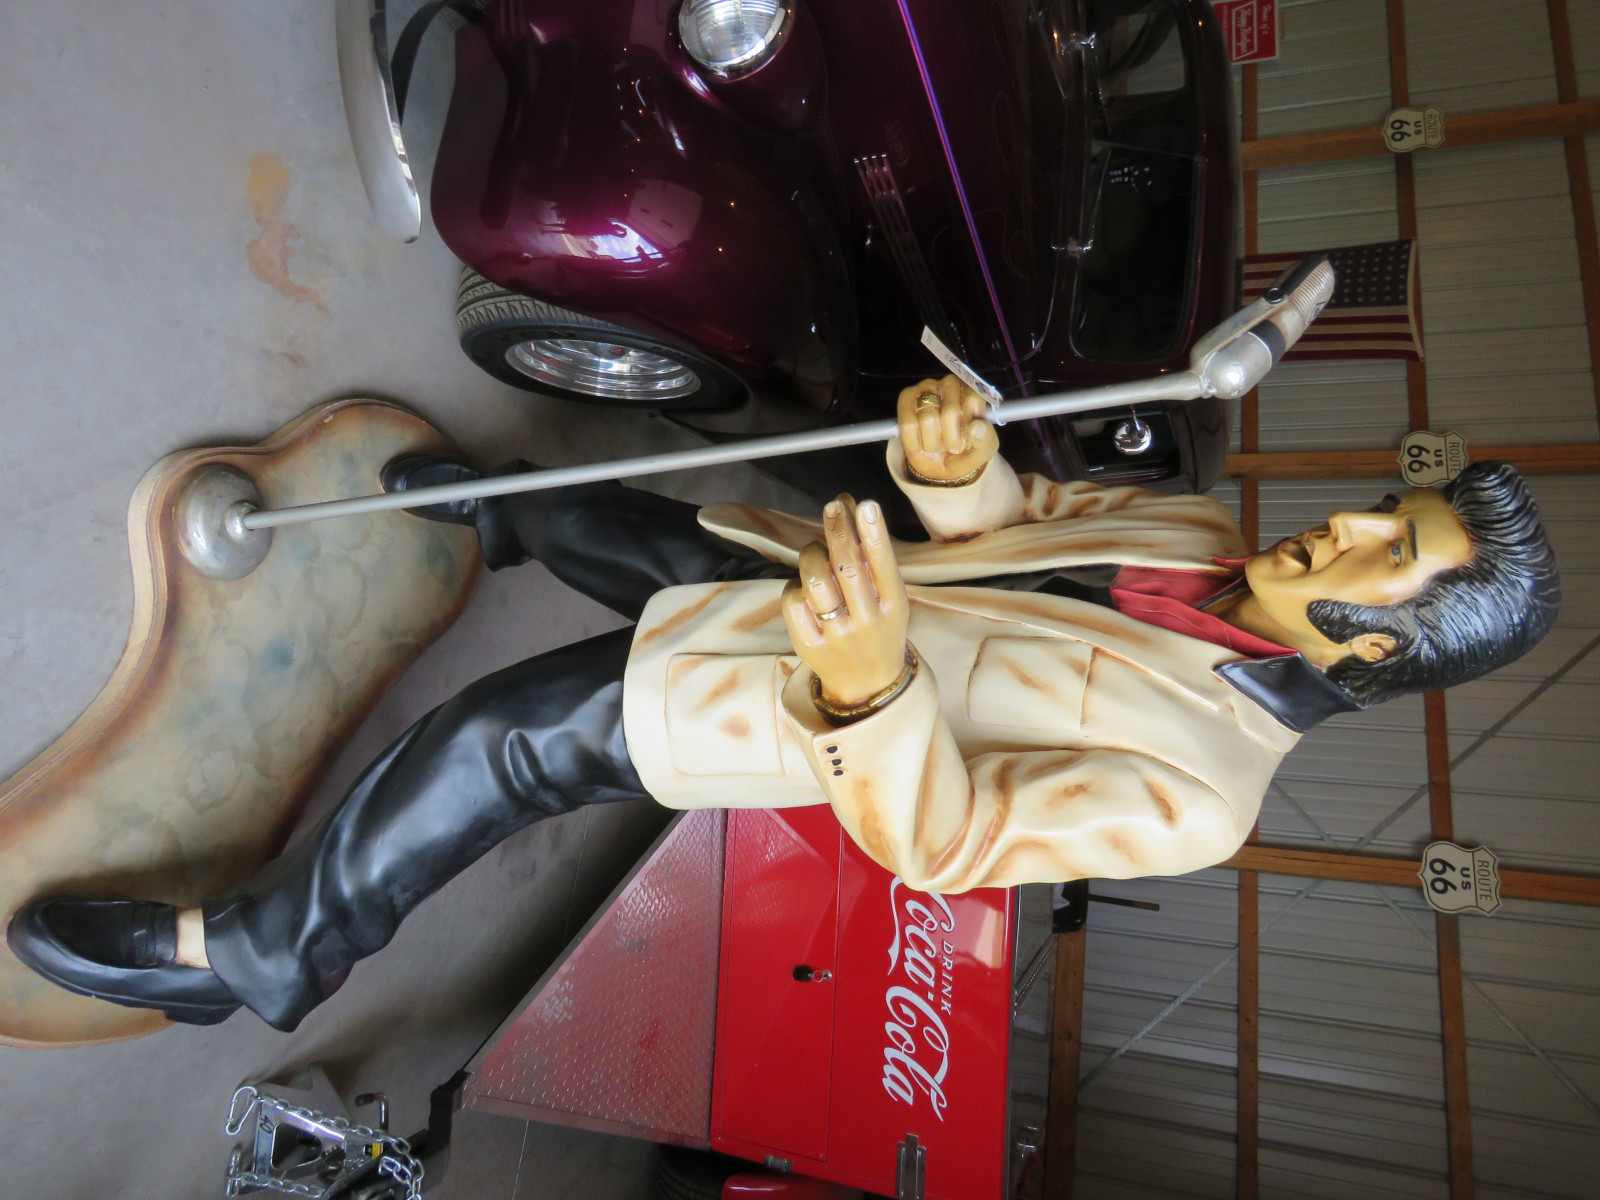 Elvis Statue with Microphone - Image 1